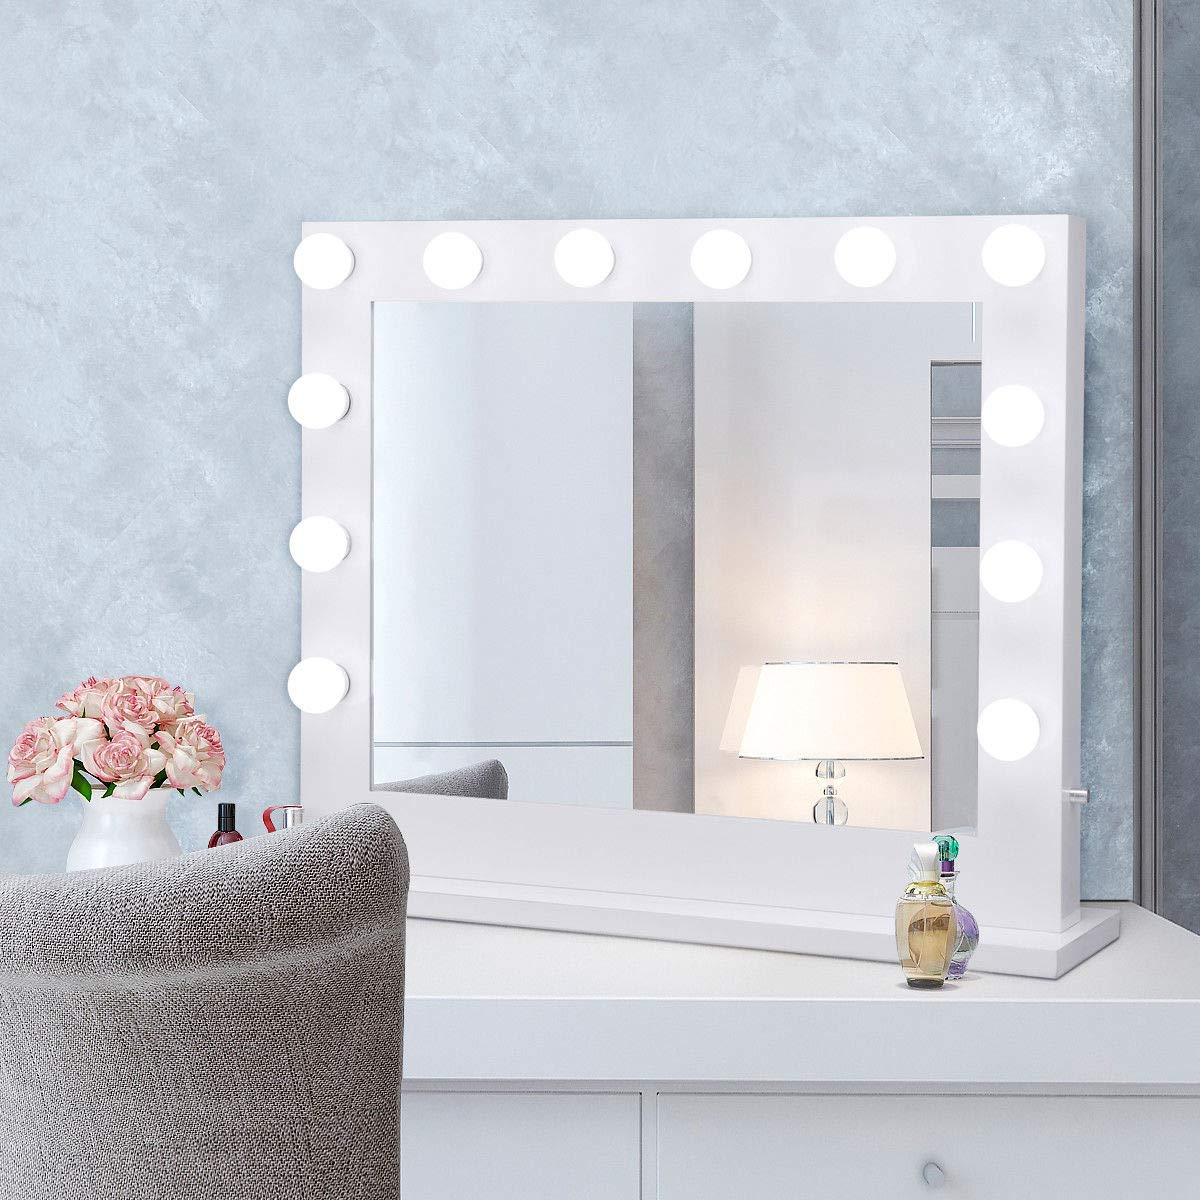 Tangkula Wall Mirror Hollywood Makeup Vanity Mirror W Light Tabletops Lighted Mirror Dimmer LED Illuminated Cosmetic Mirror W LED Dimmable Bulbs White-Rectangle